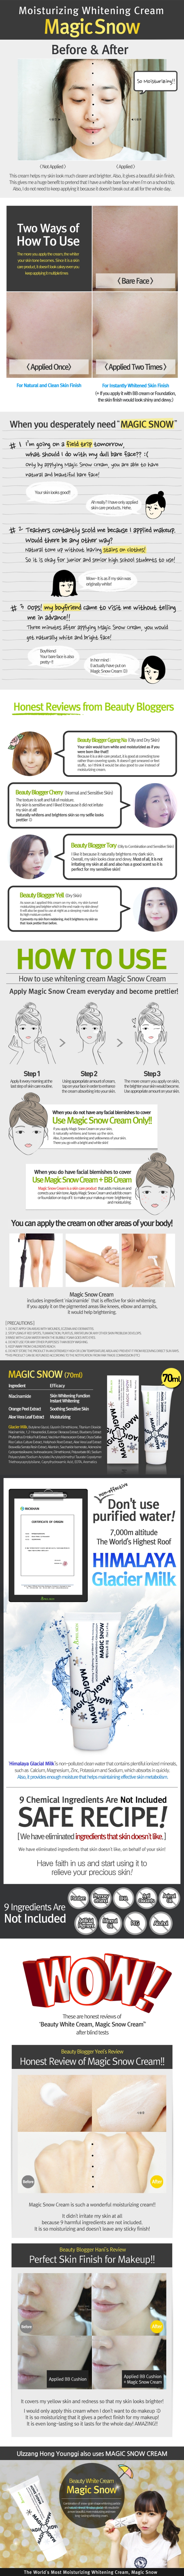 Magic Snow Cream 3